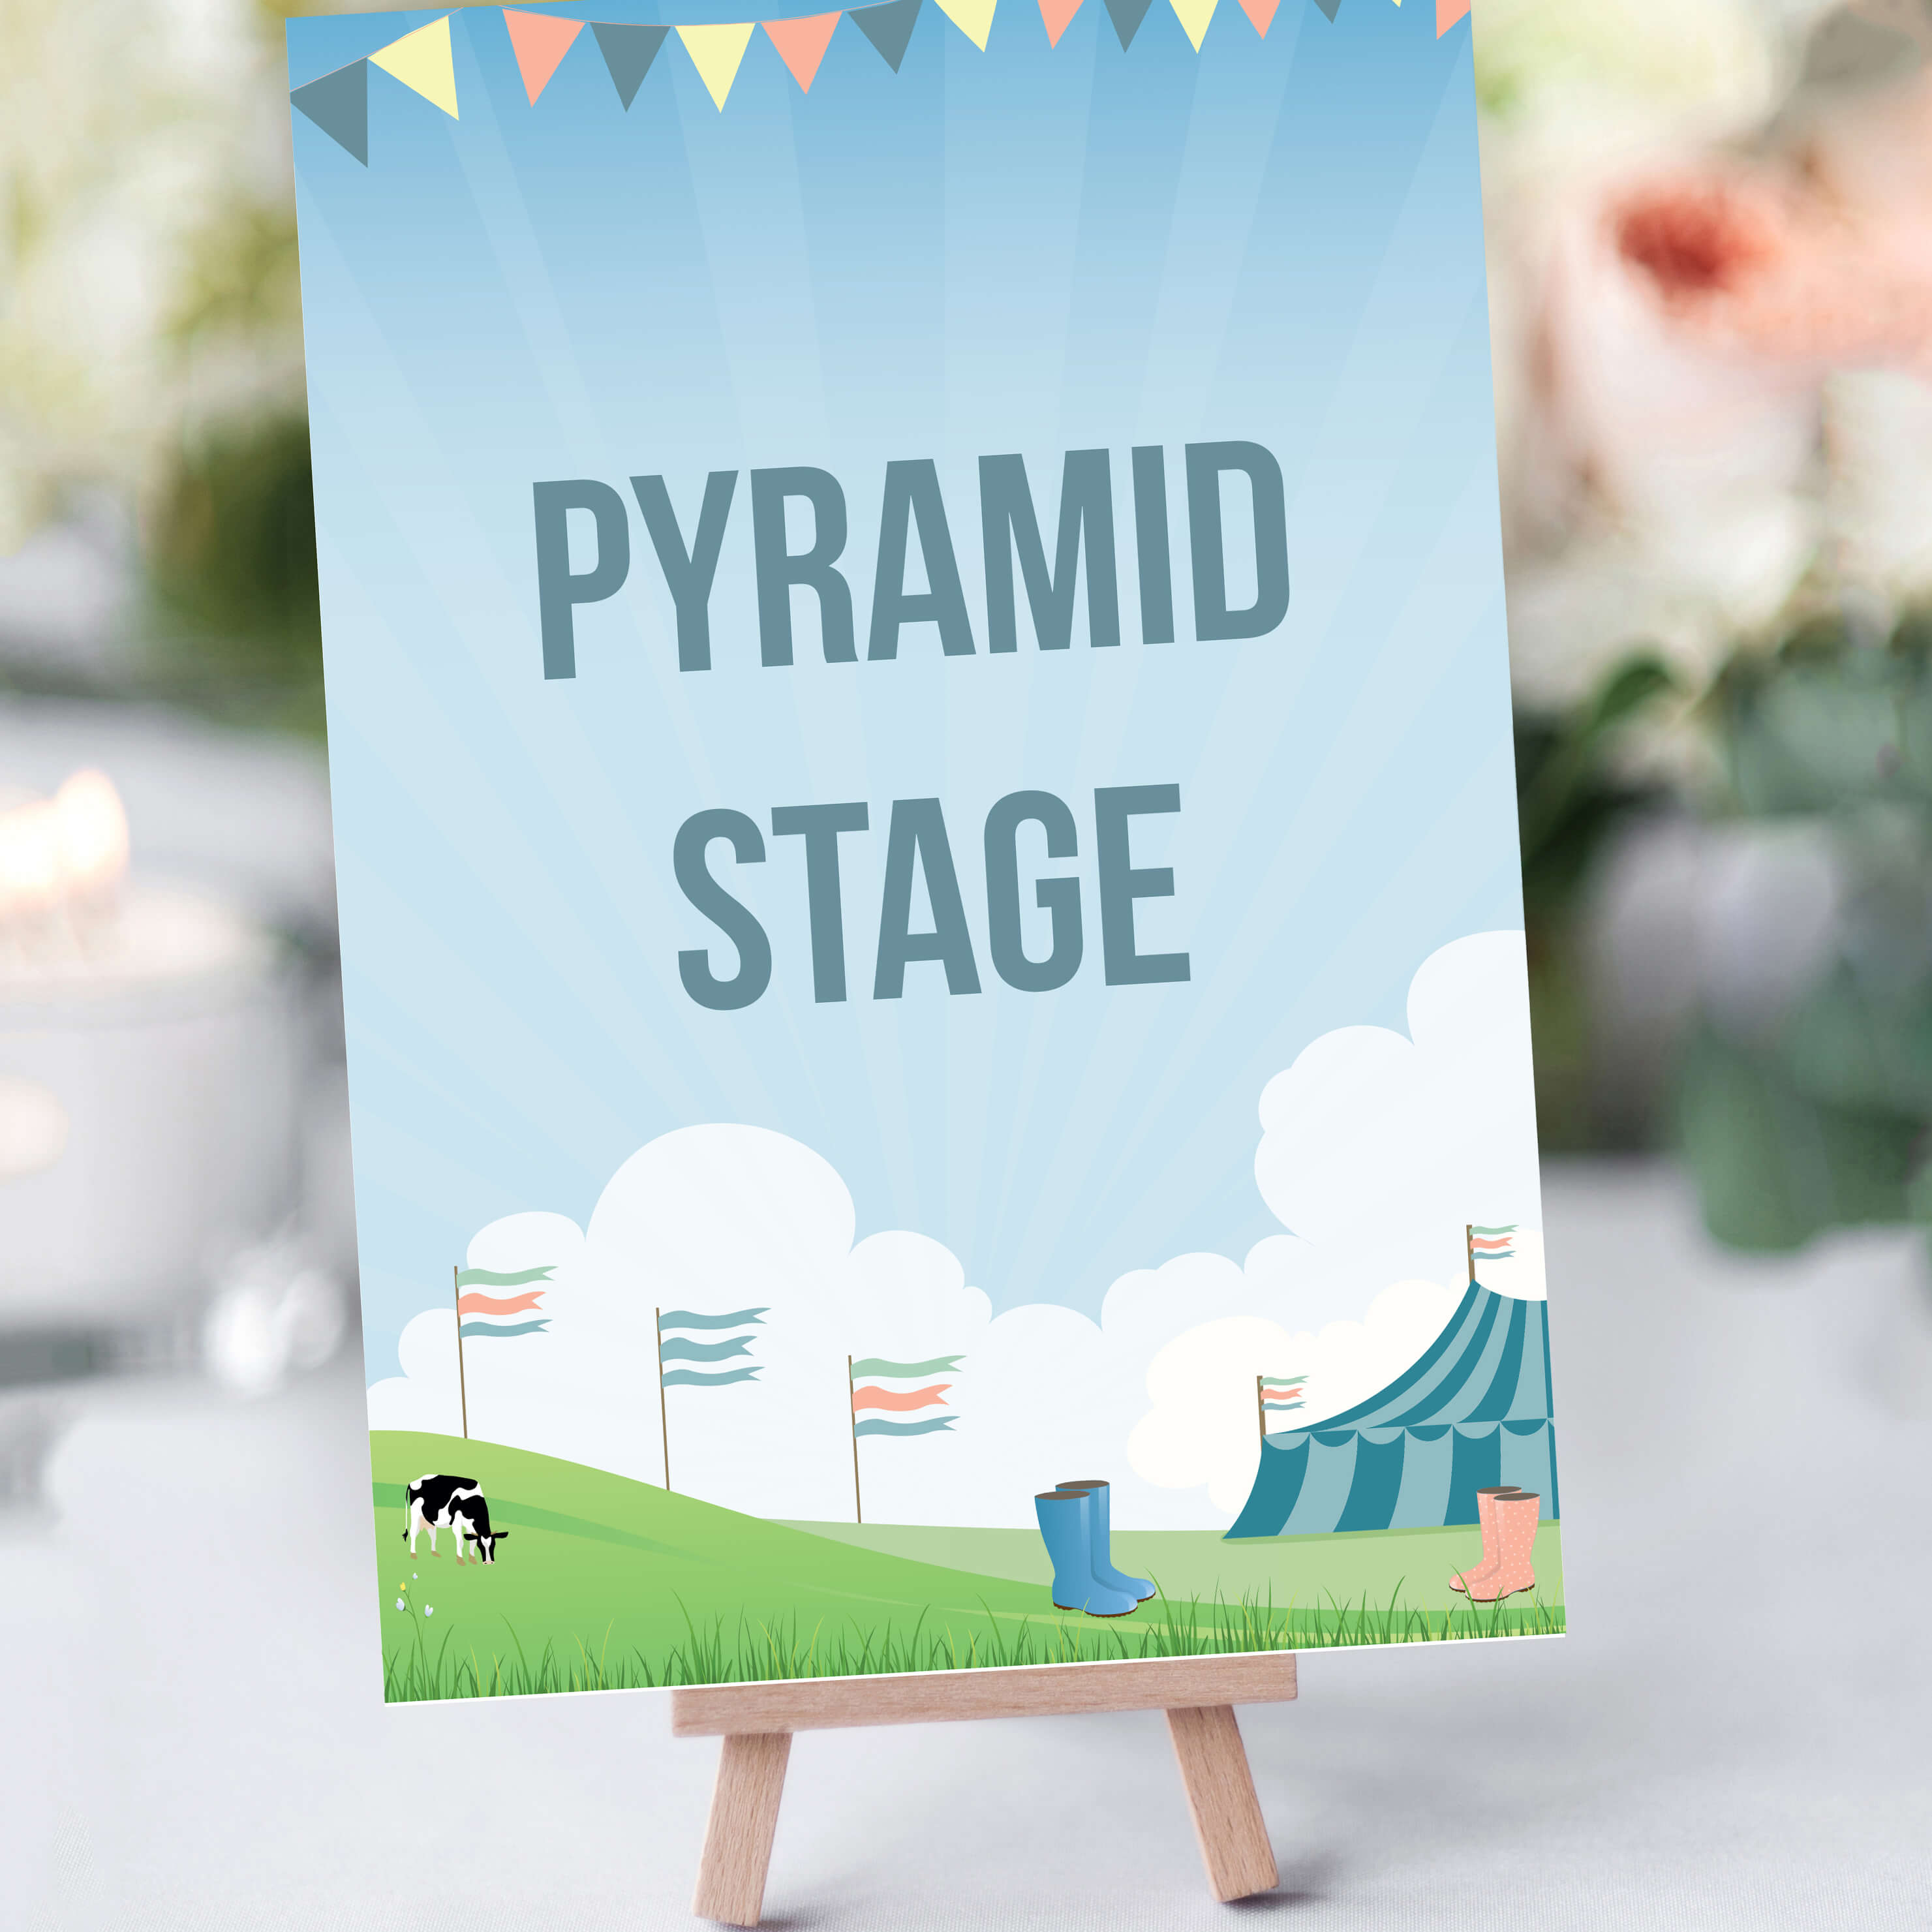 Festival Table Names for Weddings and other events - By Rodo Creative